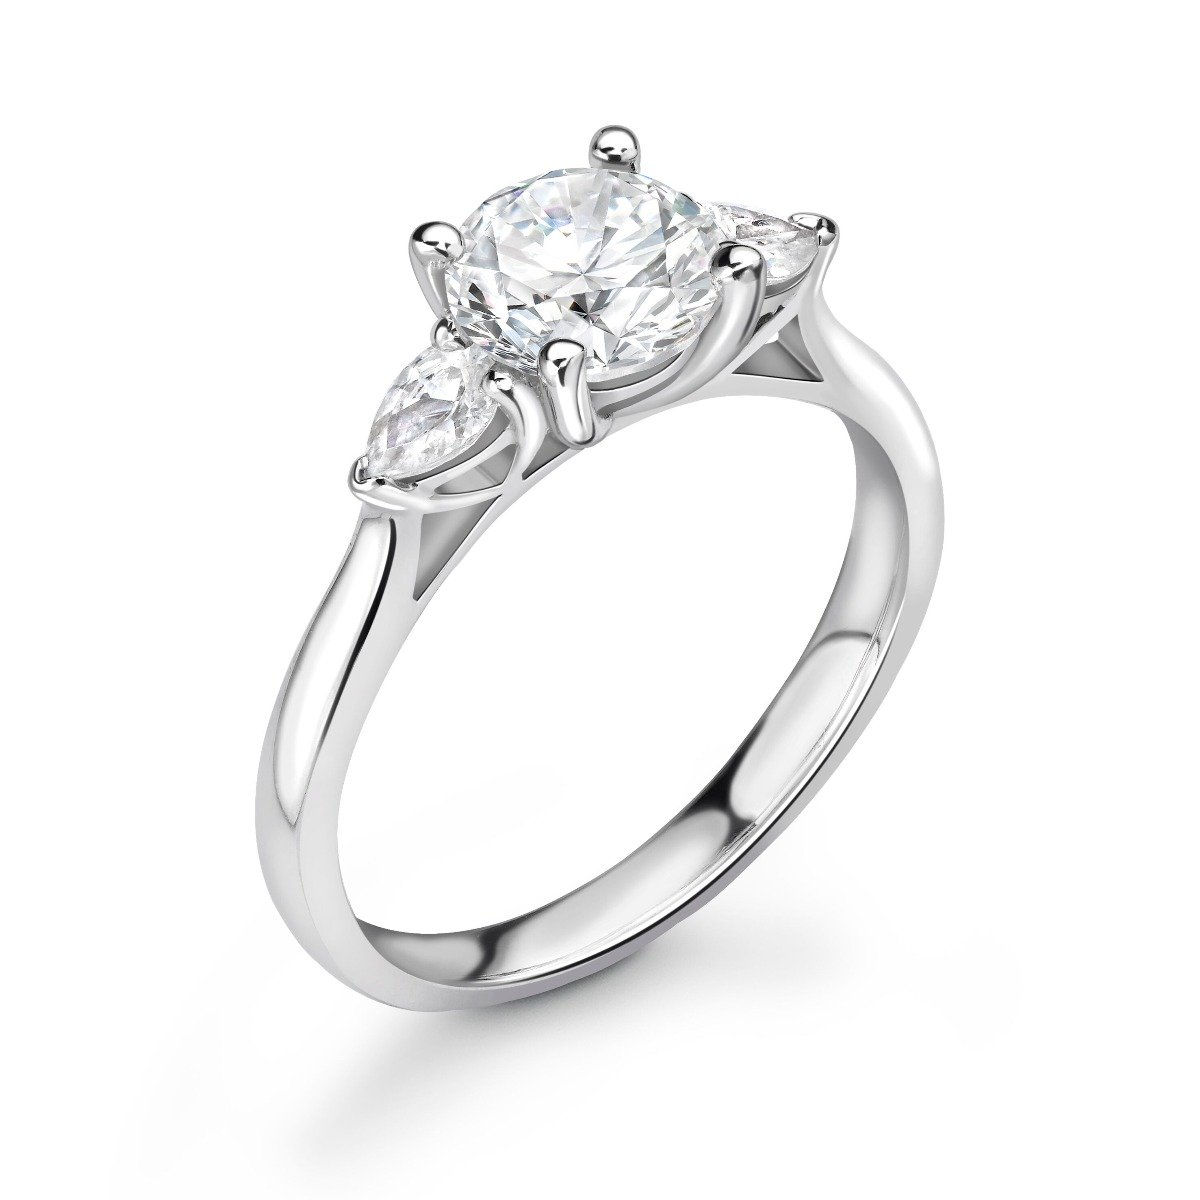 1.18ct Holly Trilogy | Round & Pear Diamond 3 Stone Engagement Ring | 18K White Gold